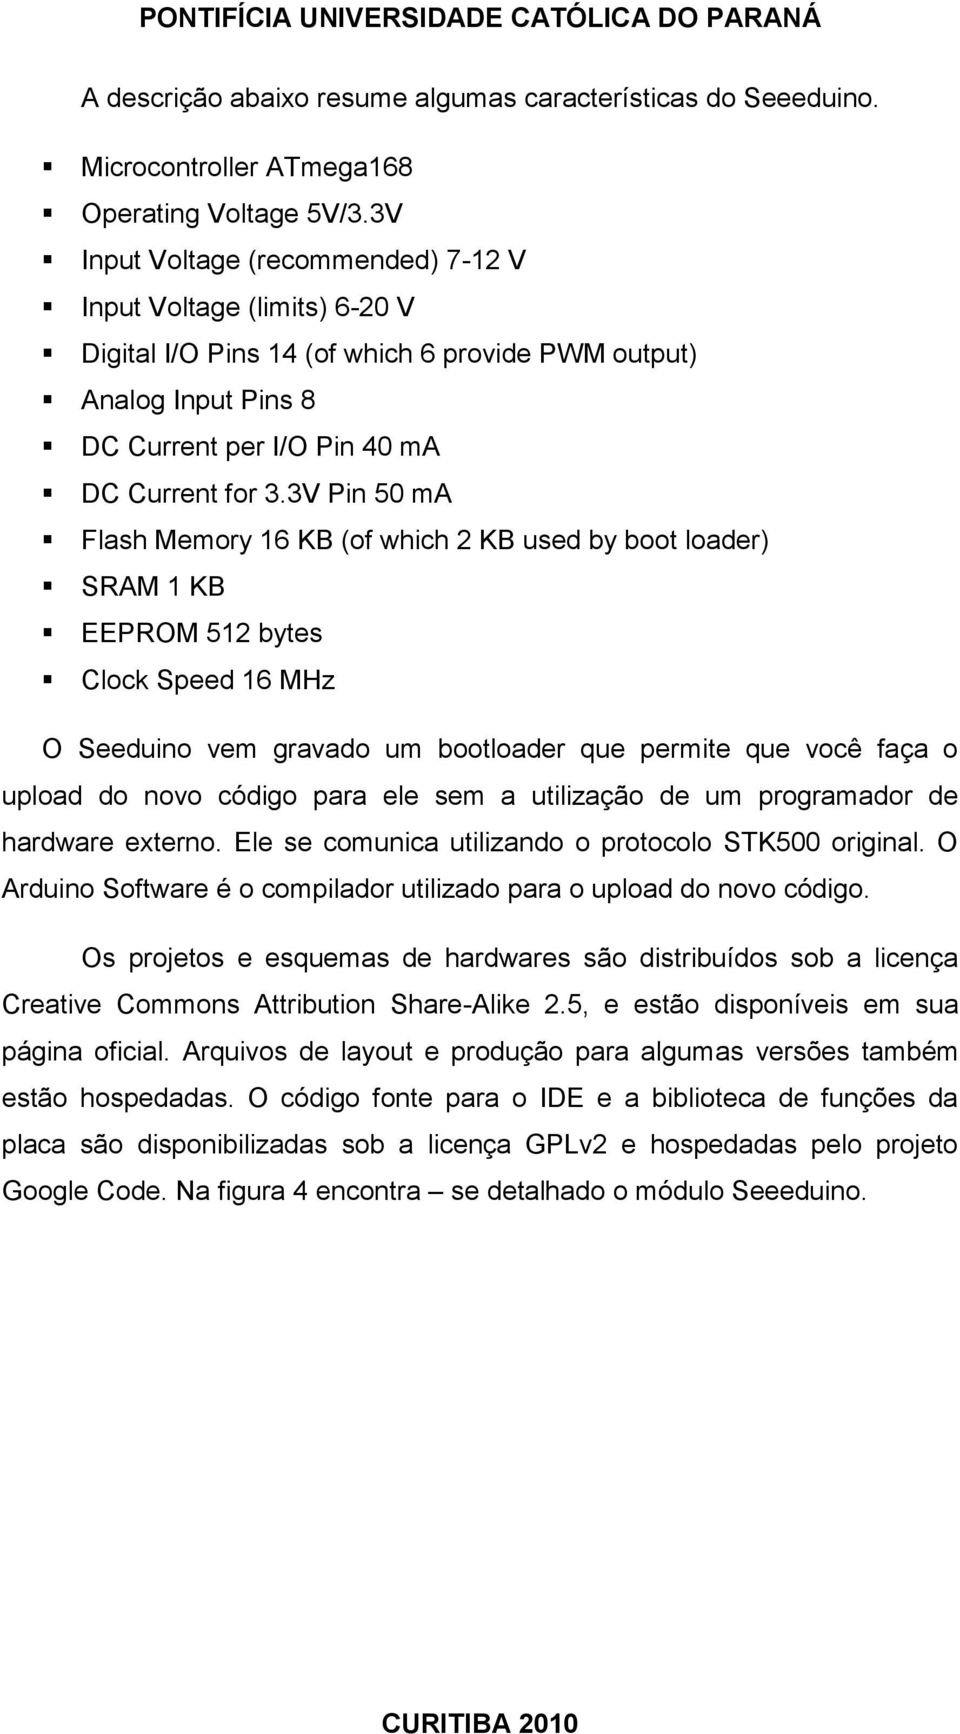 3V Pin 50 ma Flash Memory 16 KB (of which 2 KB used by boot loader) SRAM 1 KB EEPROM 512 bytes Clock Speed 16 MHz O Seeduino vem gravado um bootloader que permite que você faça o upload do novo